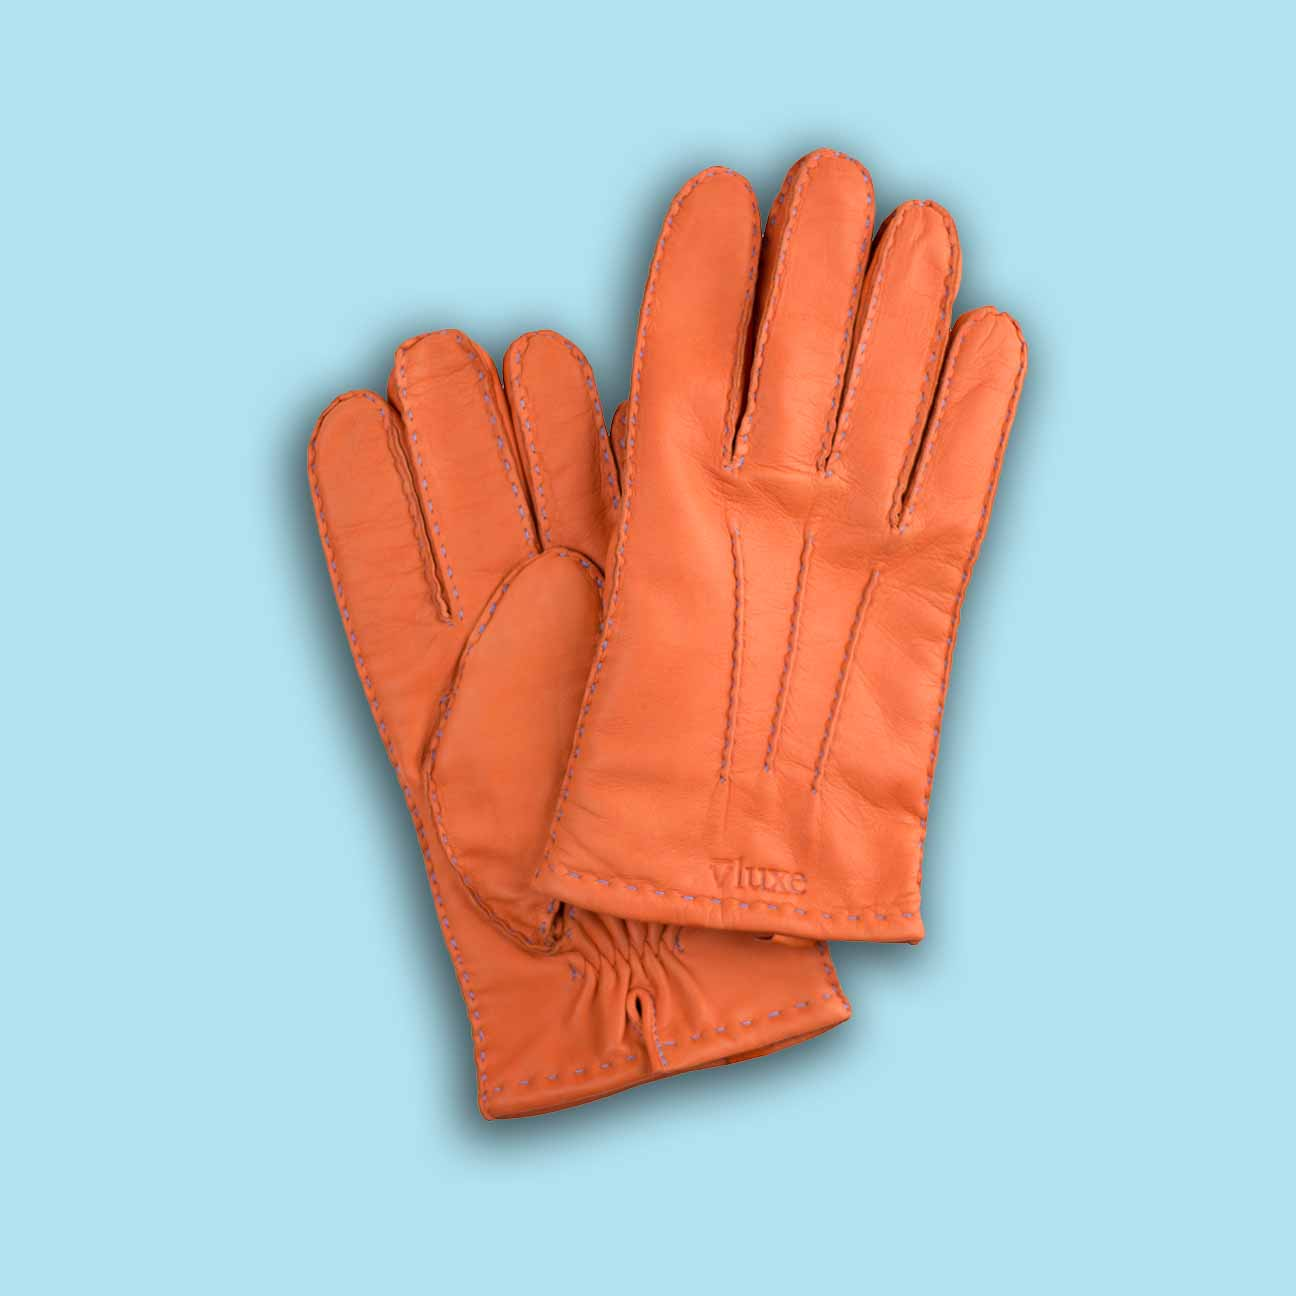 Nappa Leather Gloves VLG114